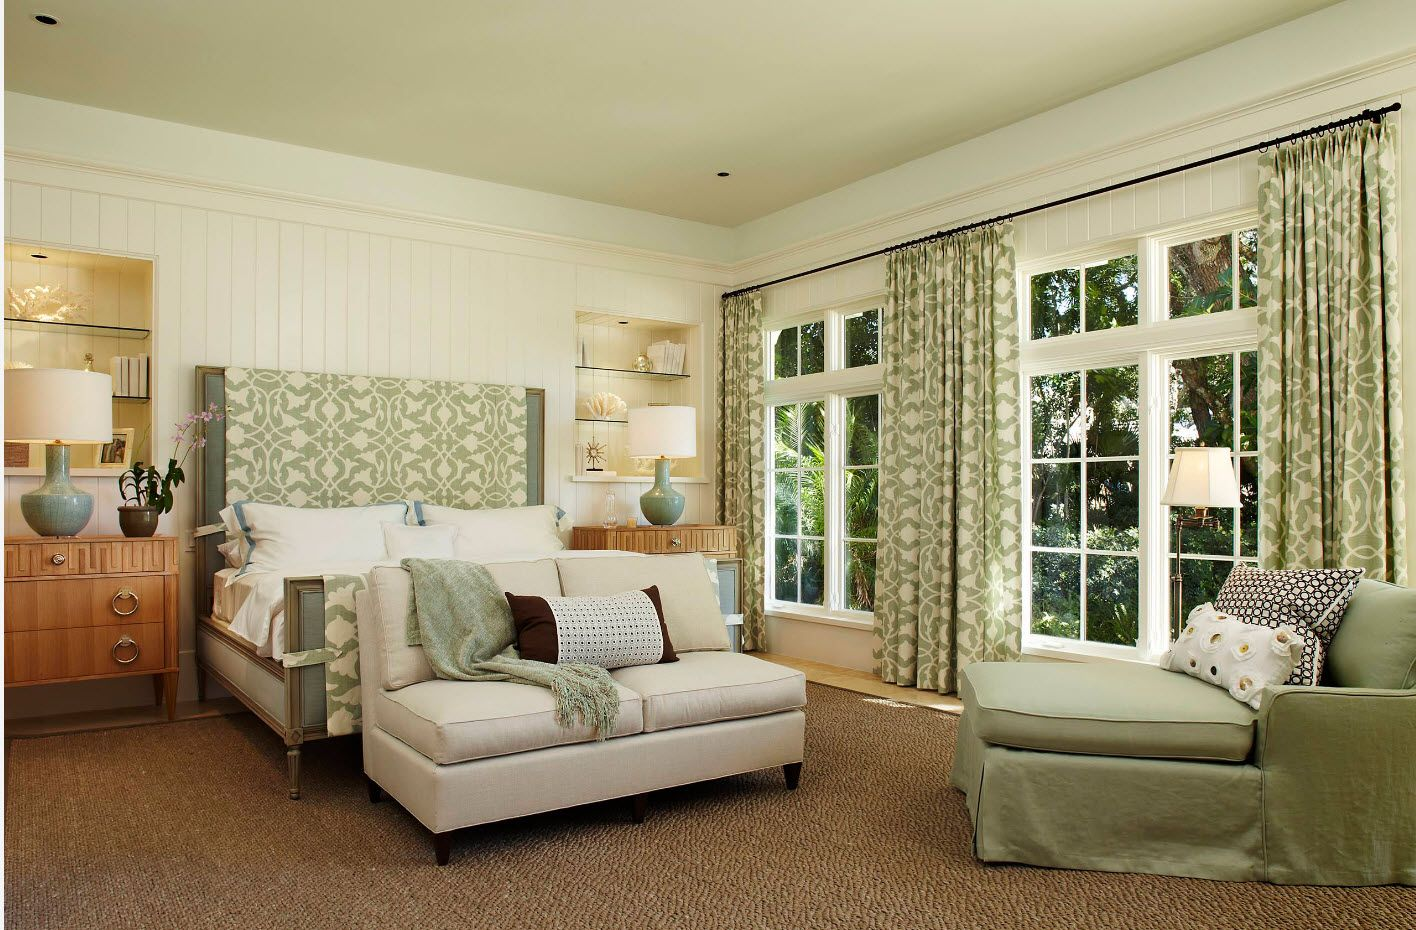 Olive color scheme for the rustic private house bedroom design